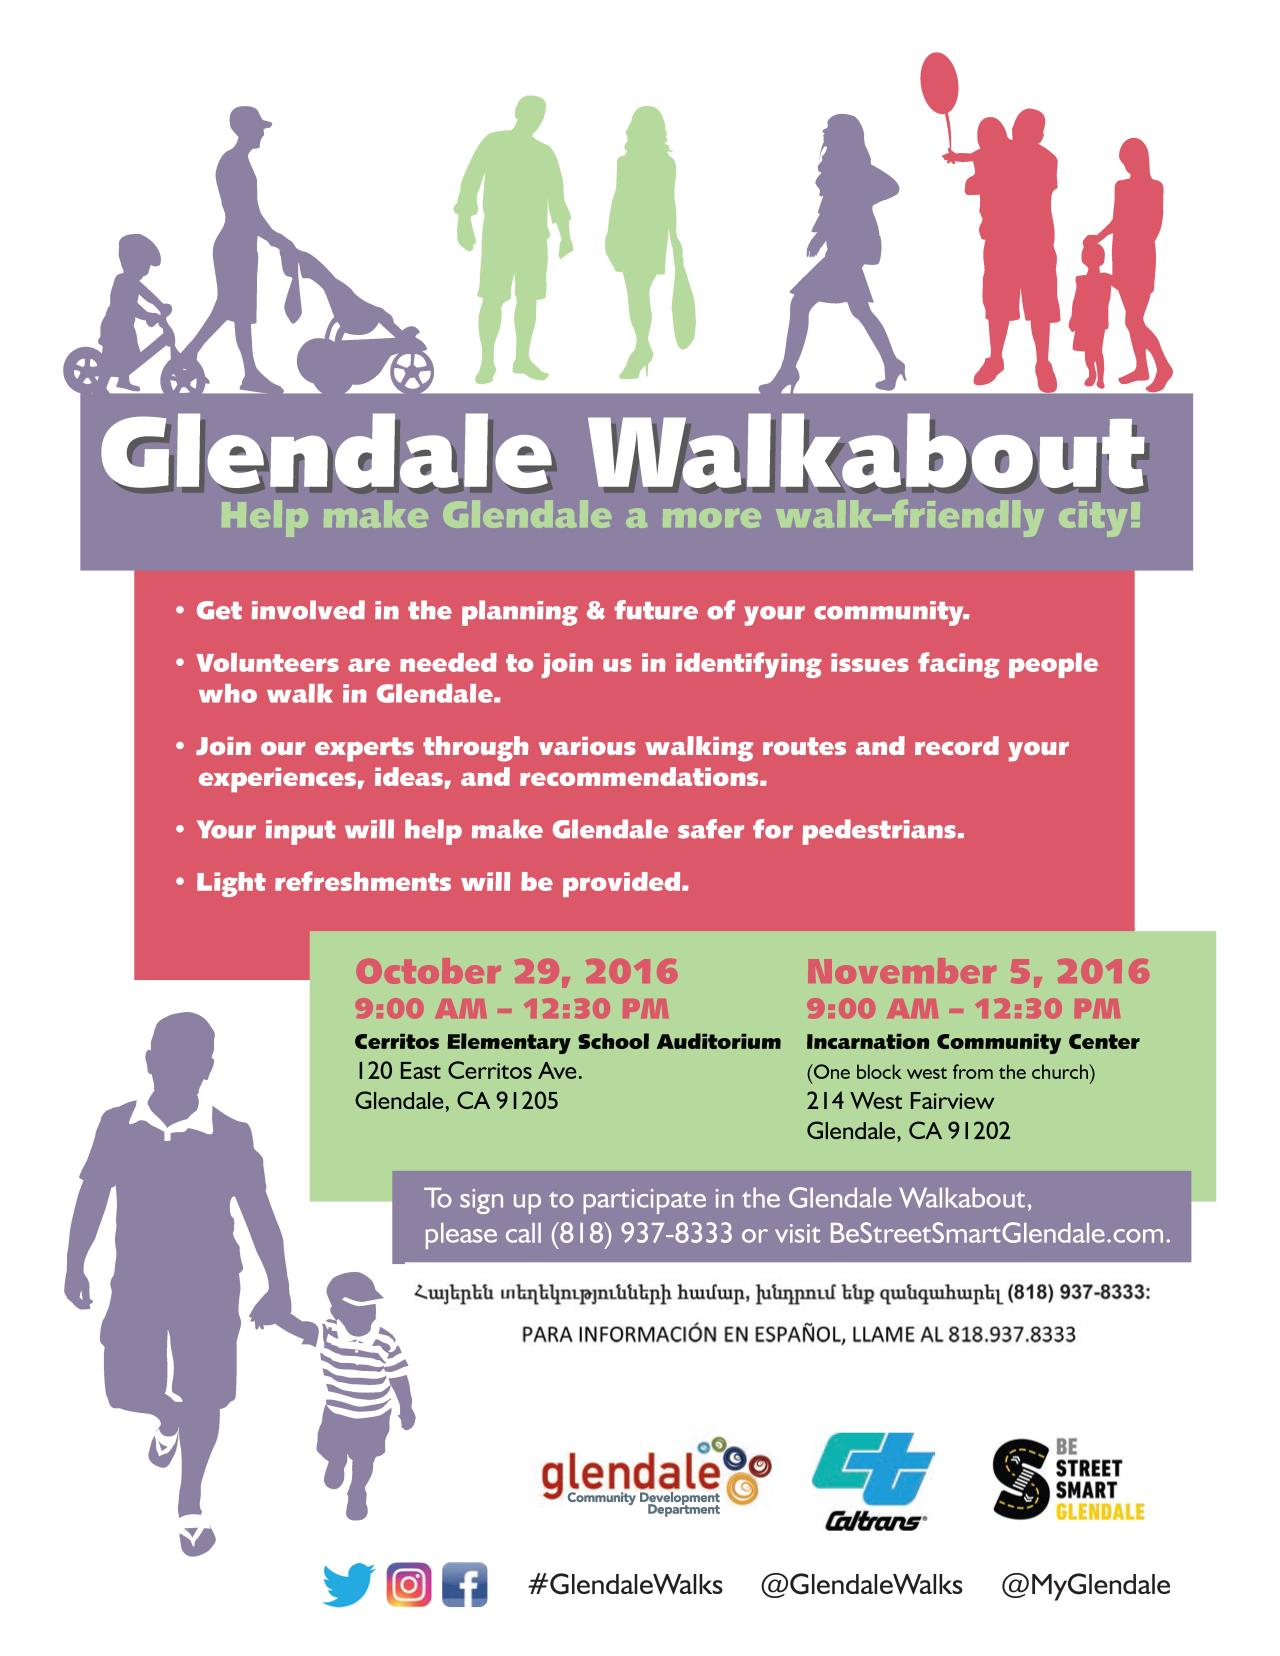 Glendale Walkabout Flyer